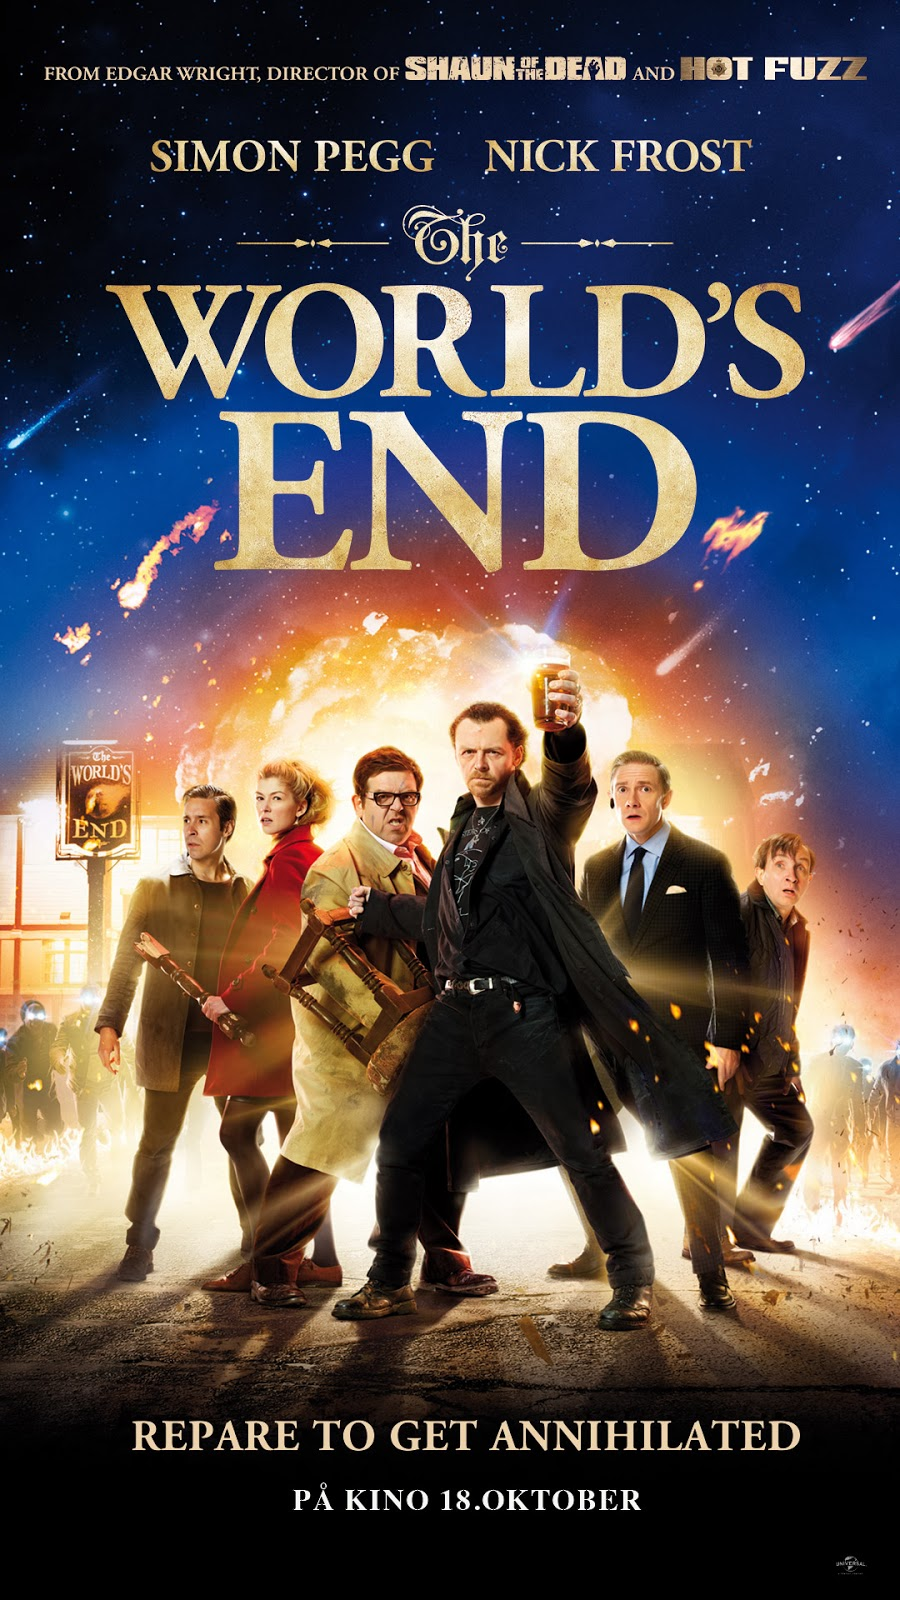 Norsk poster for The World's End